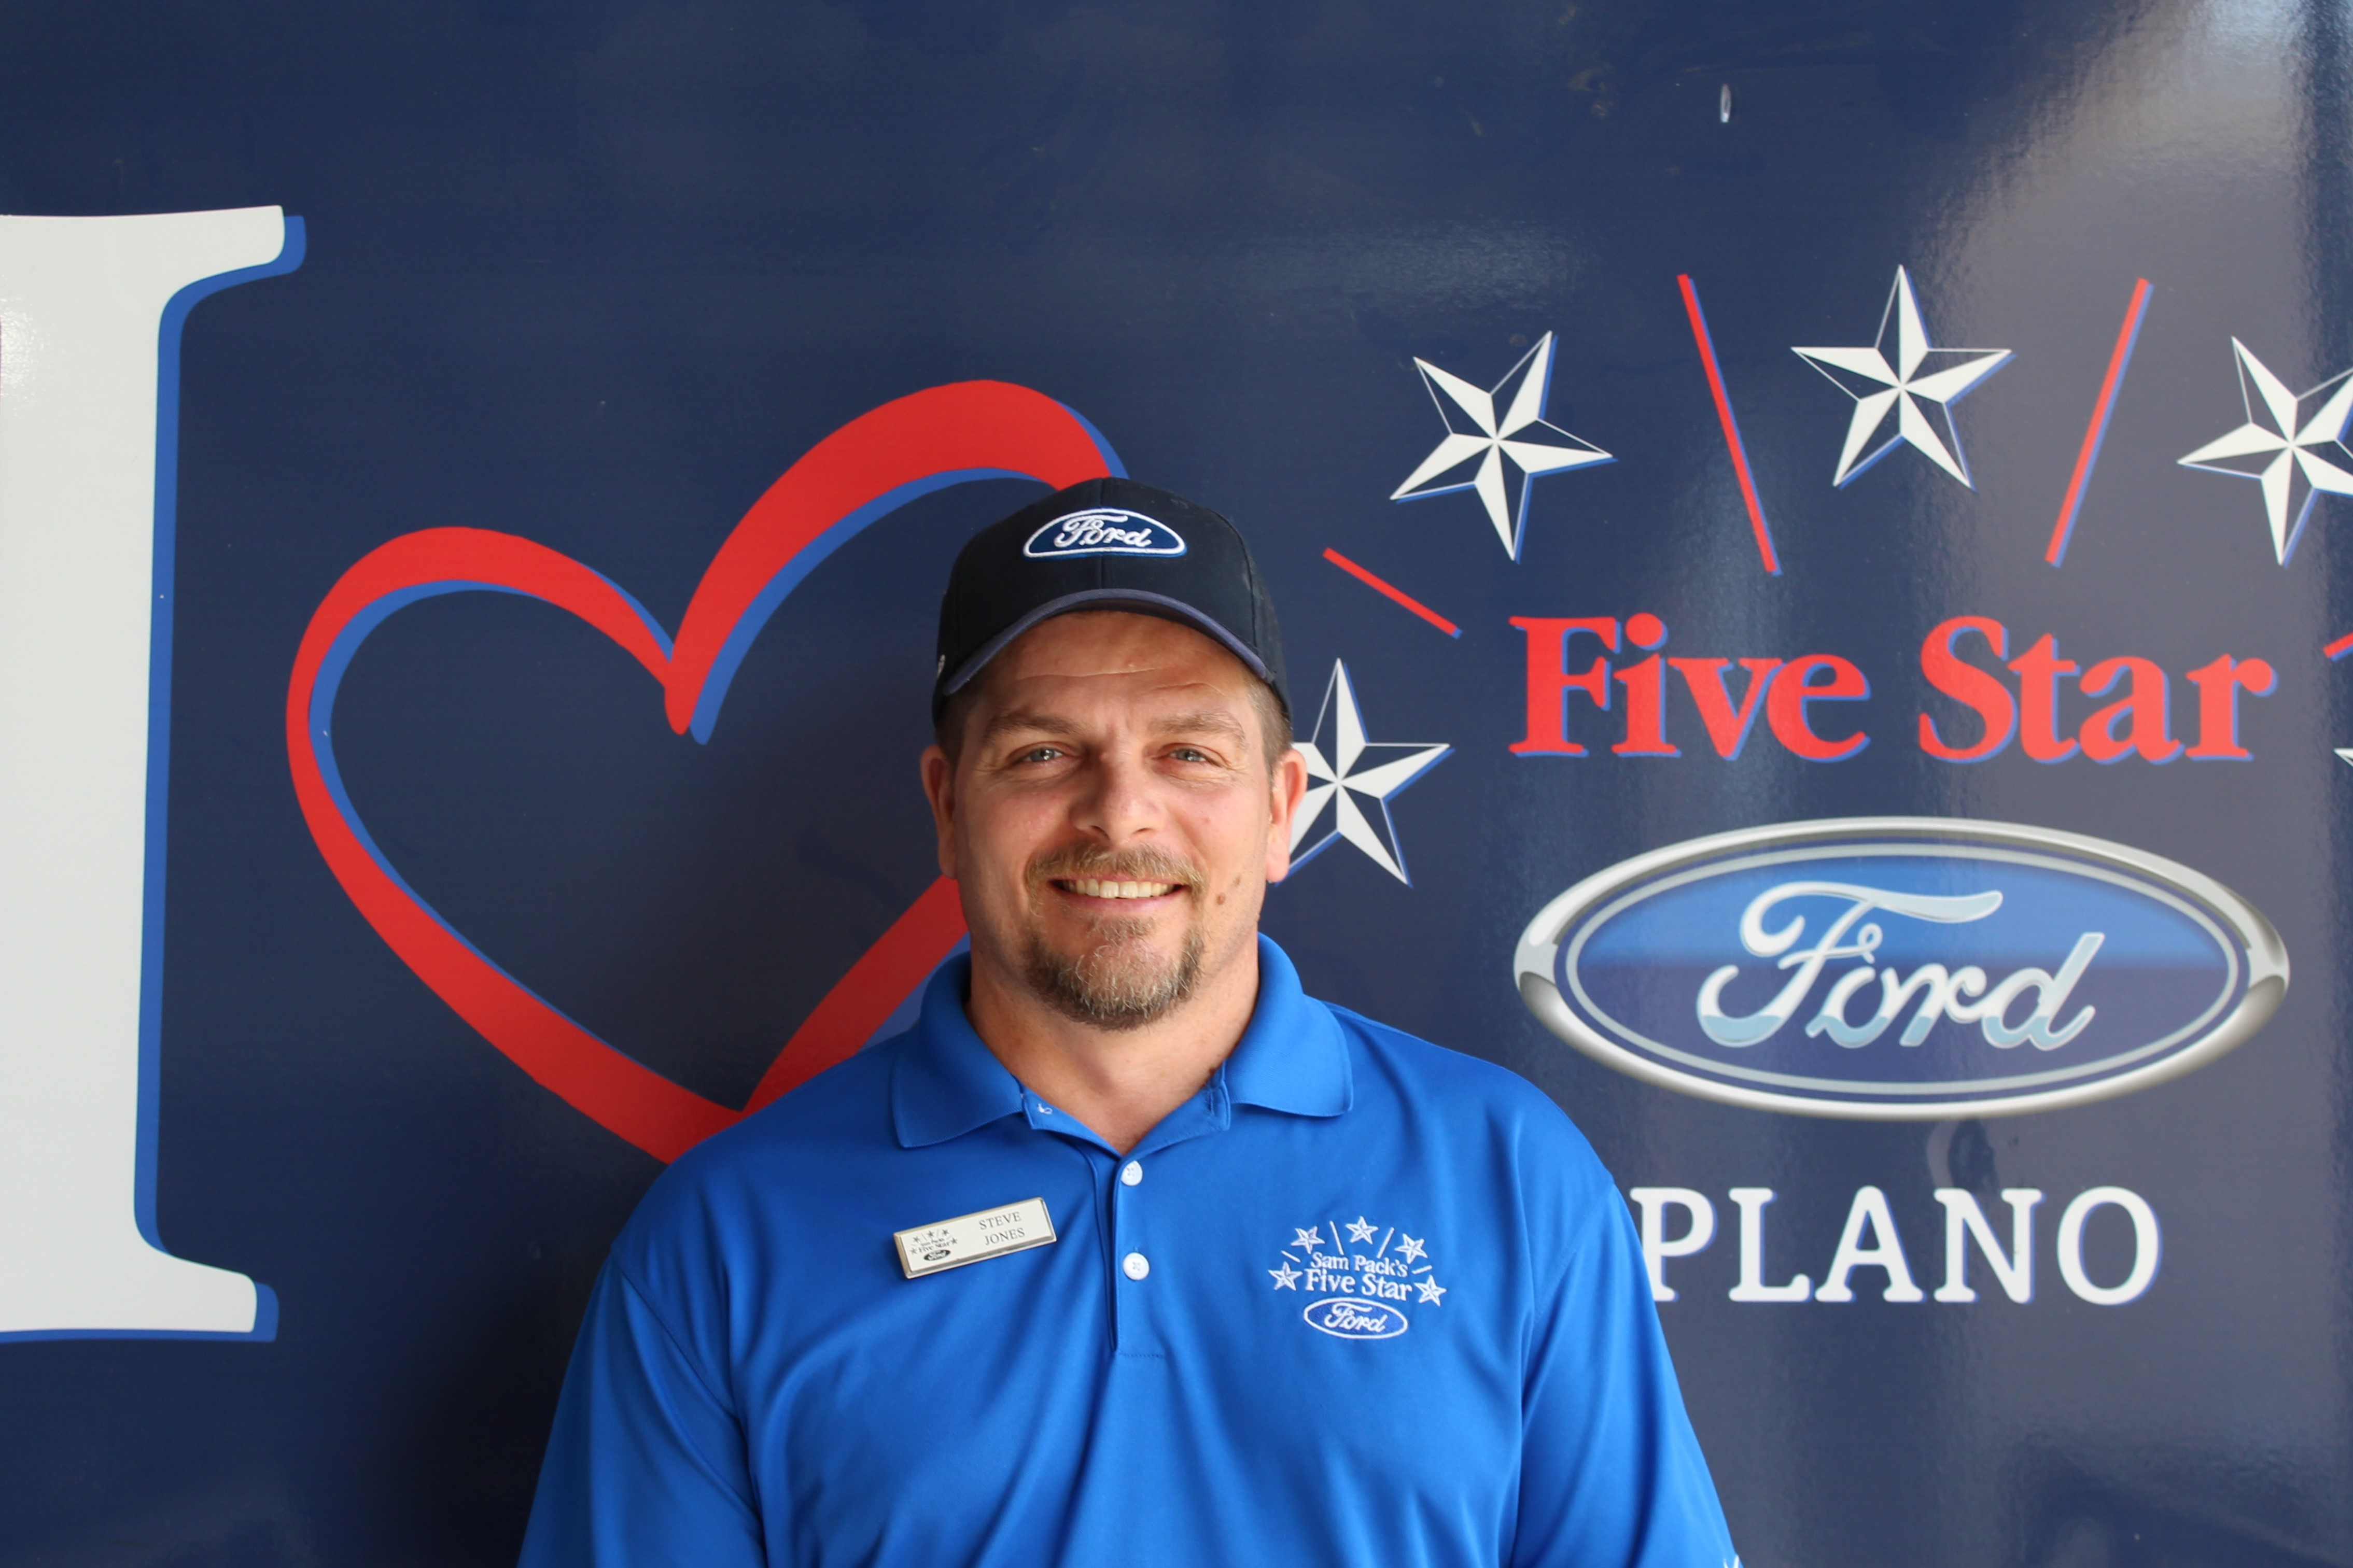 Five Star Ford Plano Team